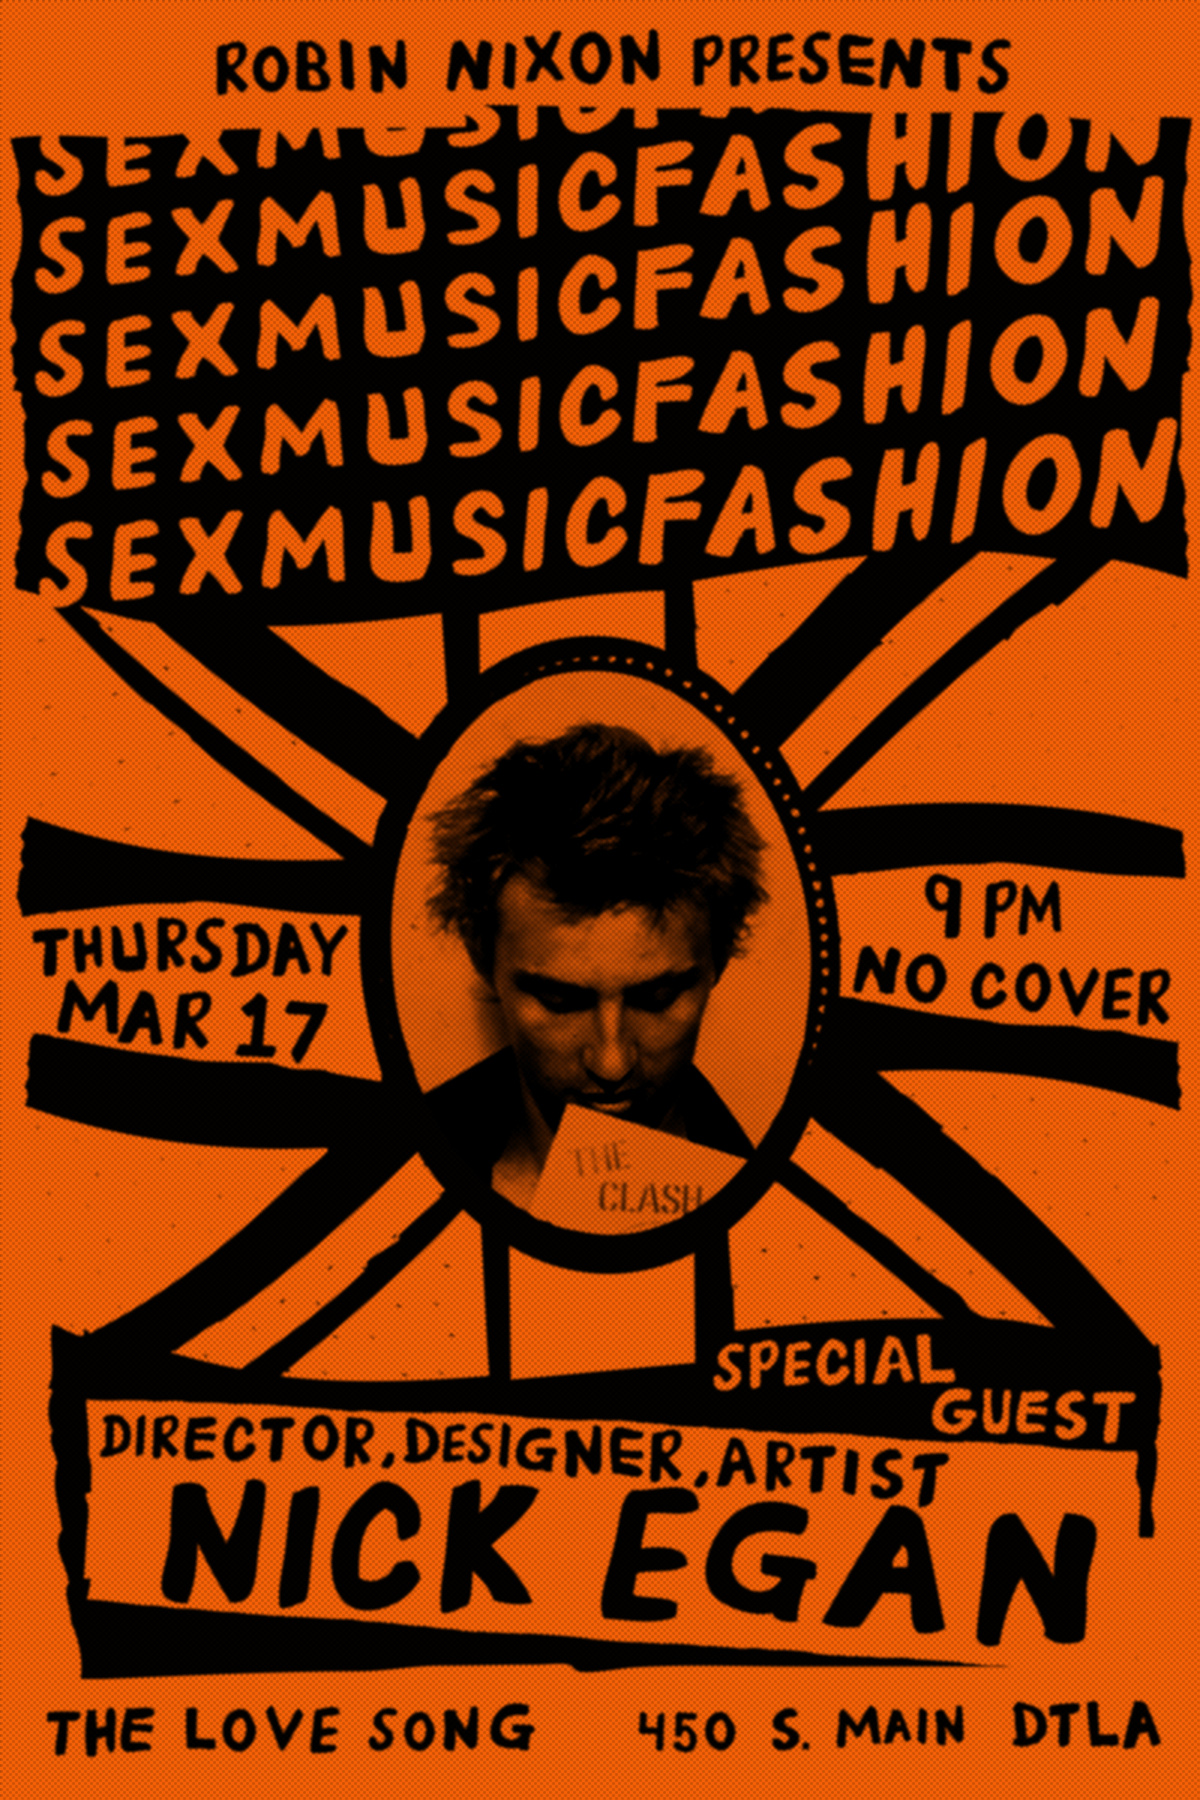 Sex, Music, Fashion